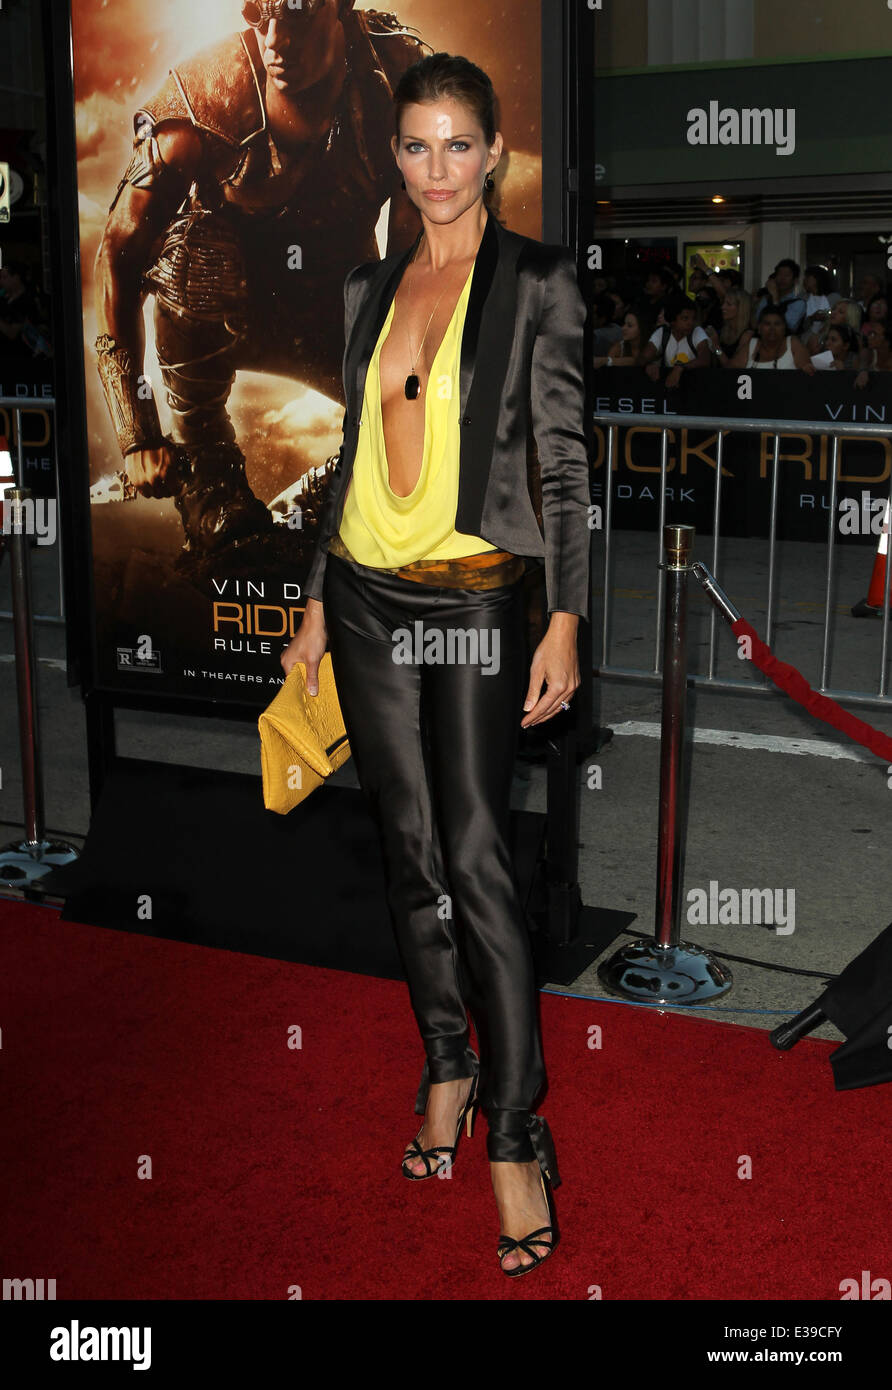 Riddick - Los Angeles Premiere Held at Regency Theatres